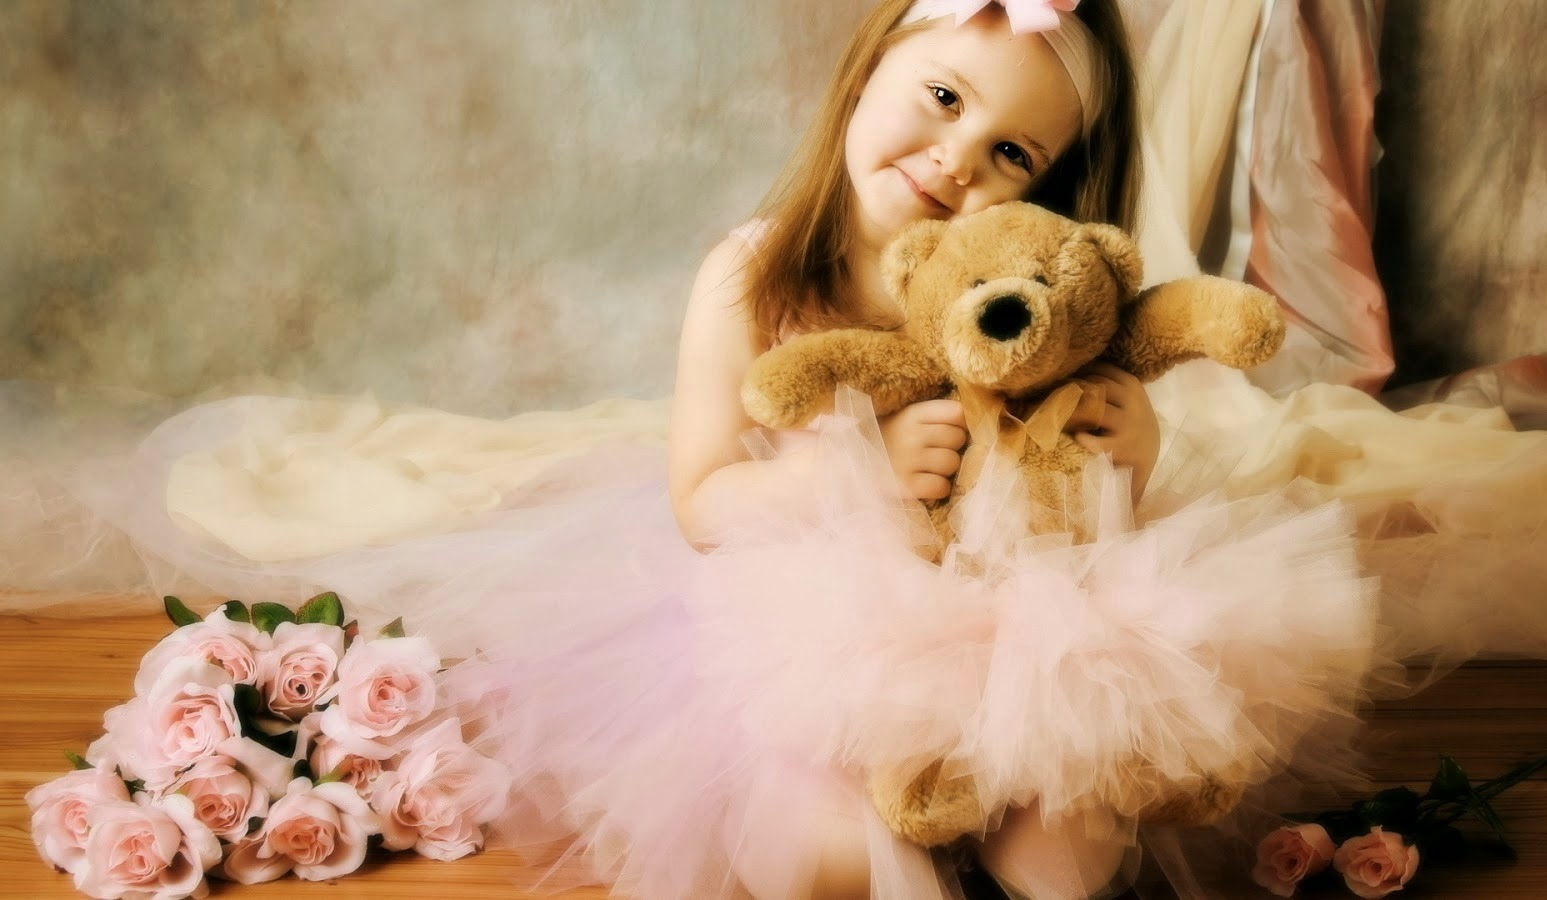 sweet girl with teddy bear wallpaper sms quotes shayari .jpg